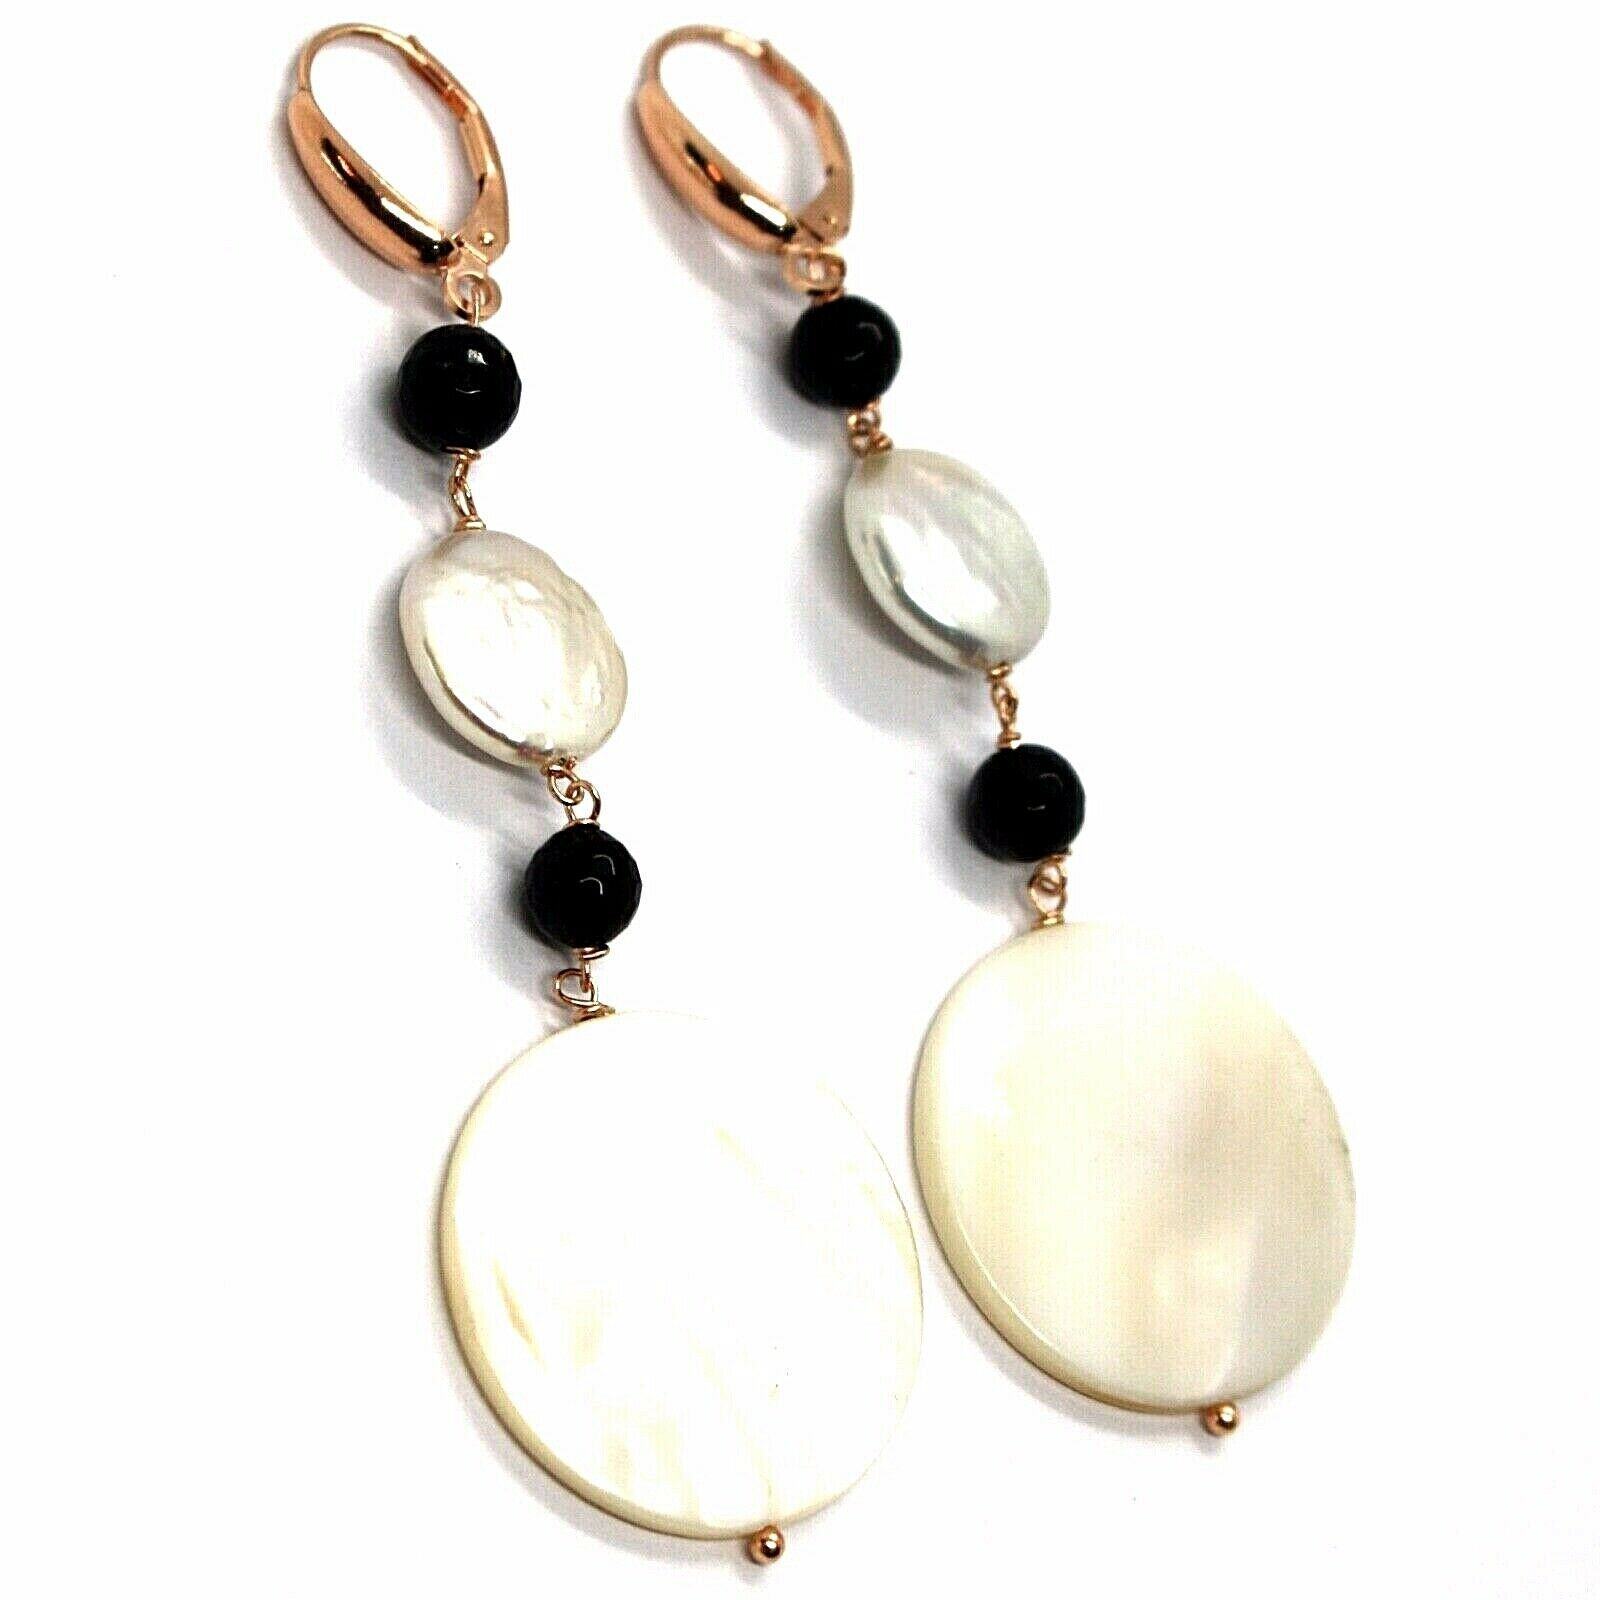 18K ROSE GOLD PENDANT EARRINGS, MOTHER OF PEARL DISC, ONYX, 3.1 INCHES LENGTH